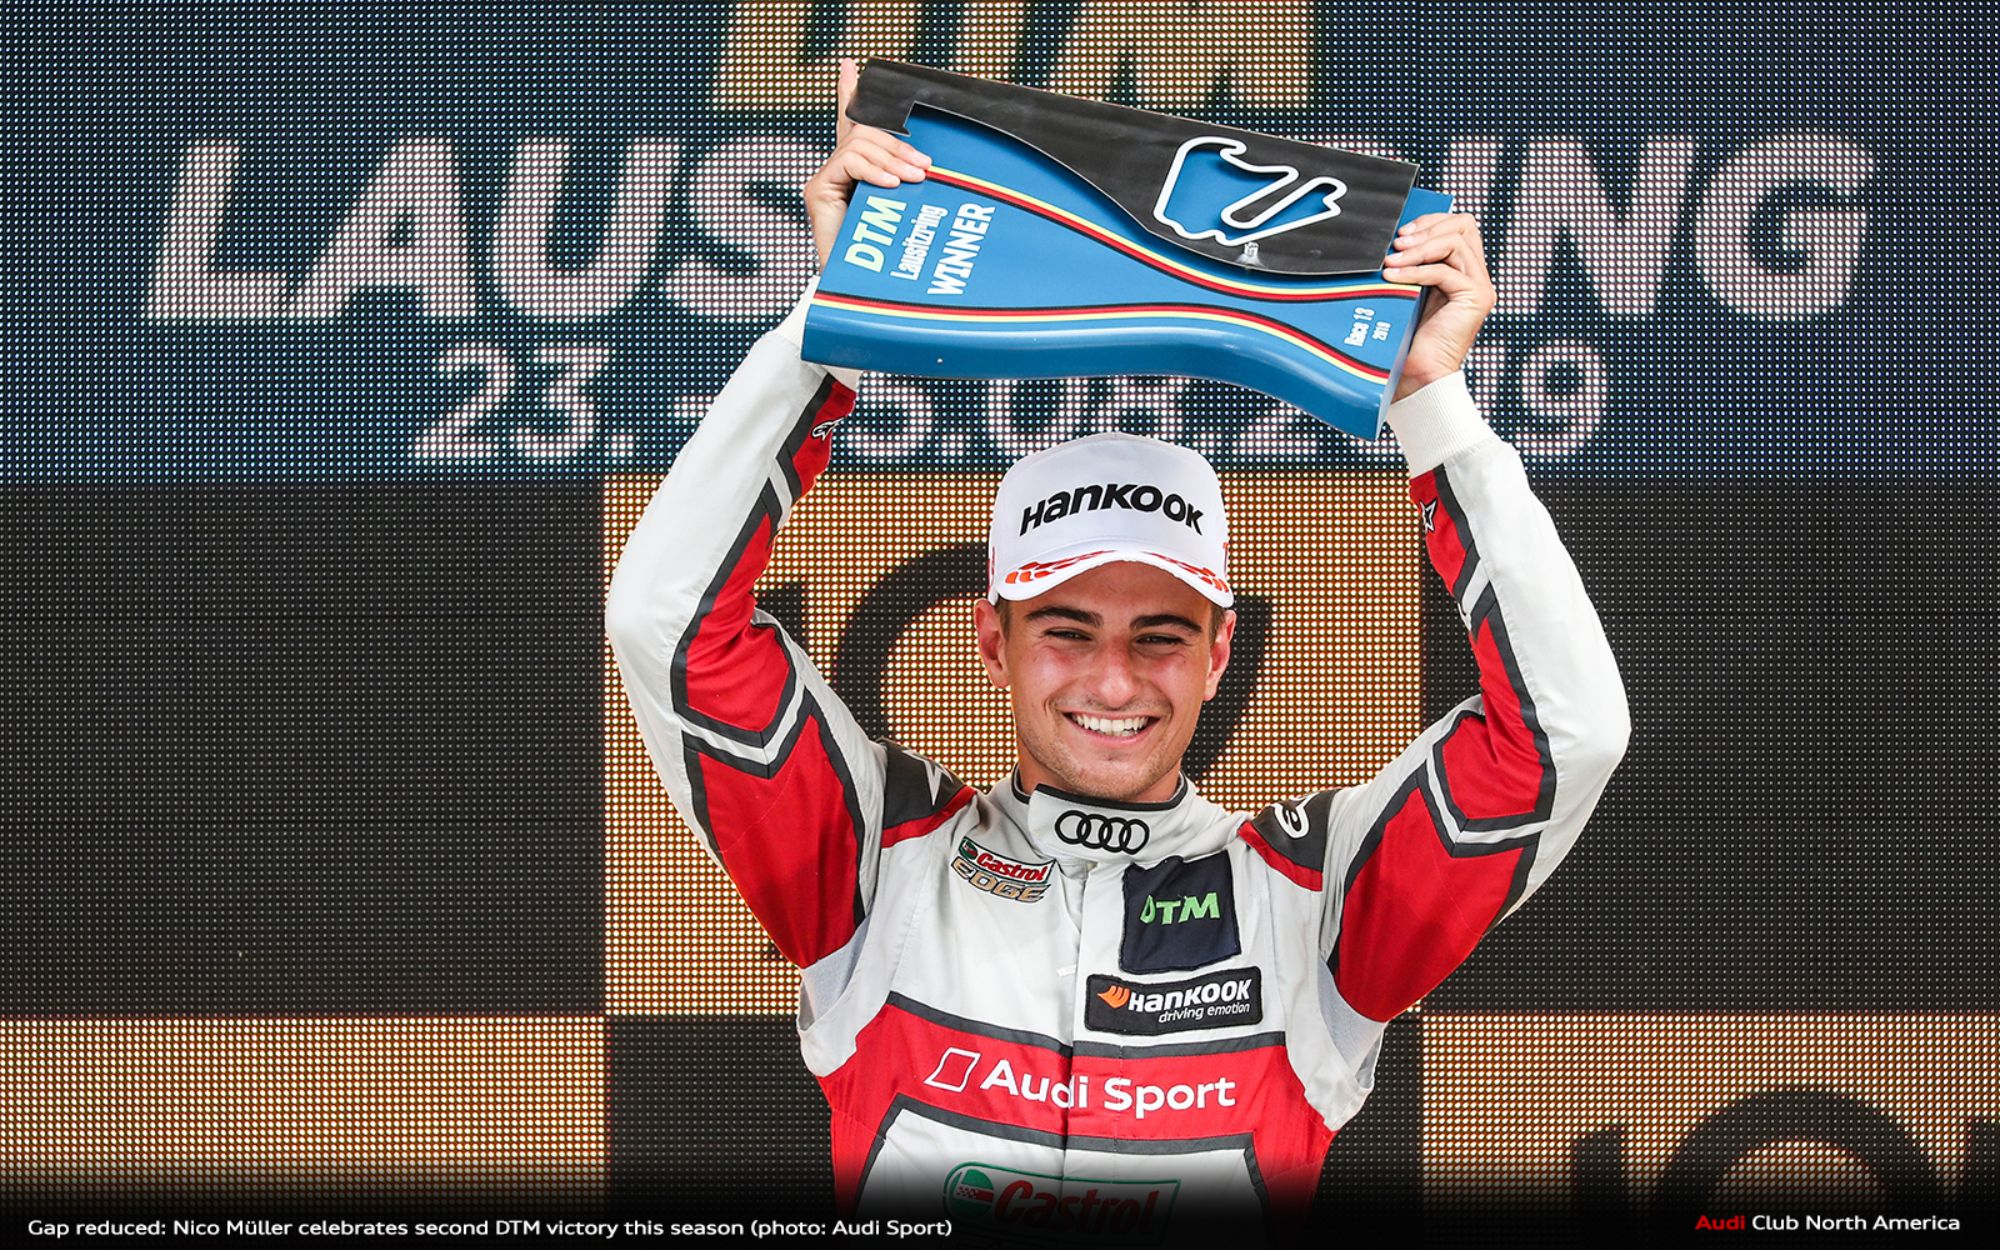 Gap Reduced: Nico Müller Celebrates Second DTM Victory This Season